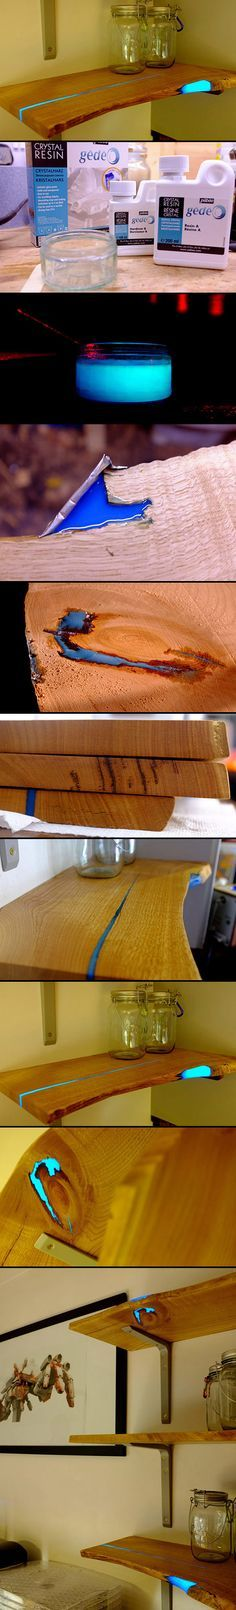 Artist Matt Brown used epoxy to fix the gaps in the wood for his shelves. I love Surfing and carving wood. This makes sense to me, beautifully done.